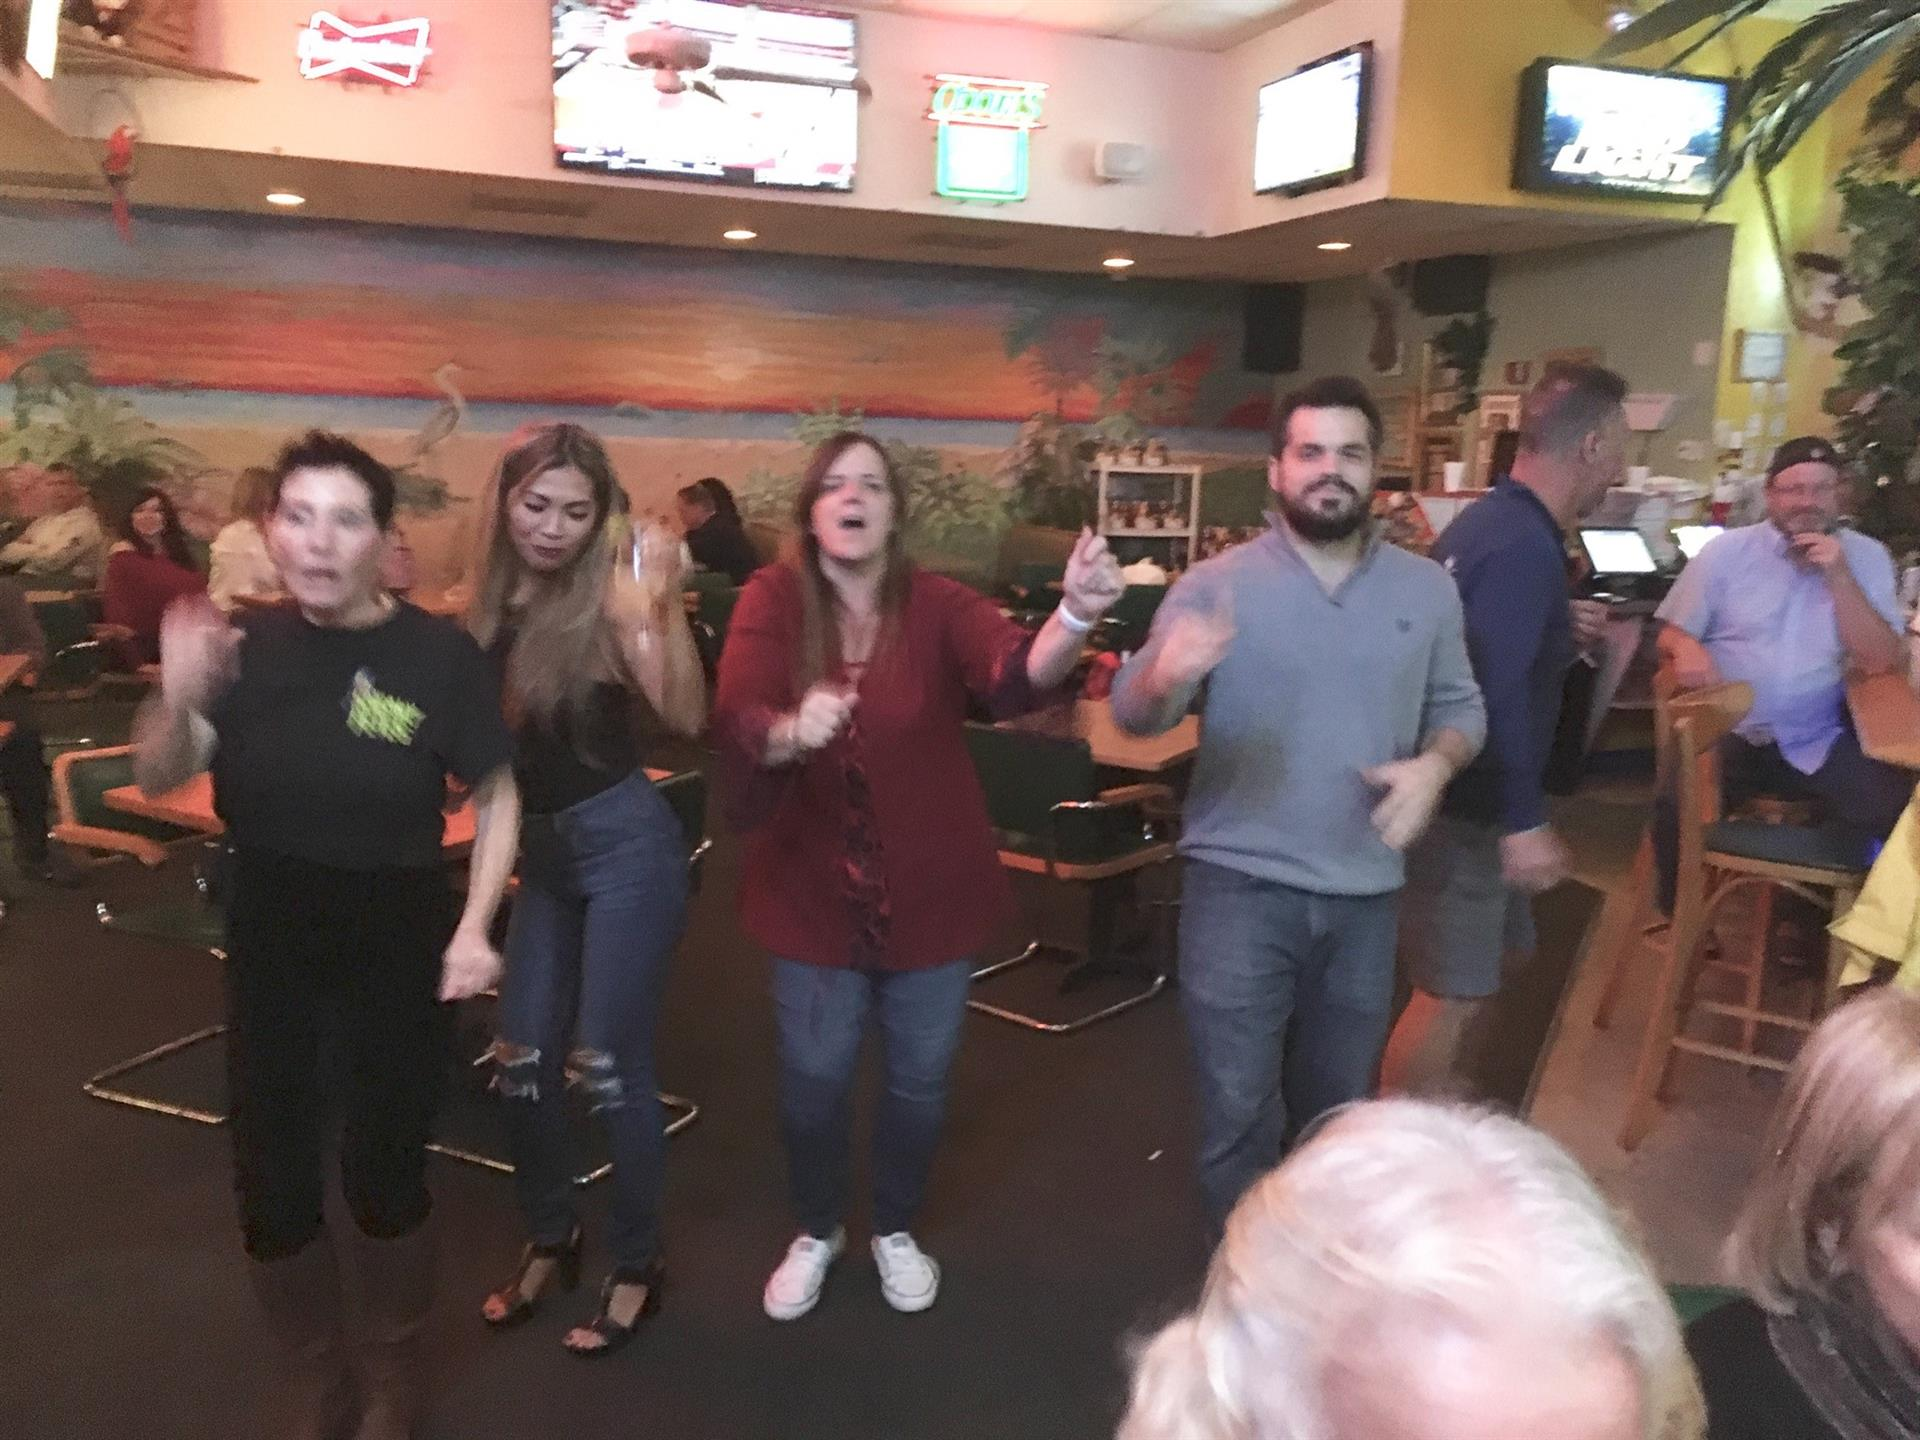 Four friends in a row dancing. Other patrons seated at the bar